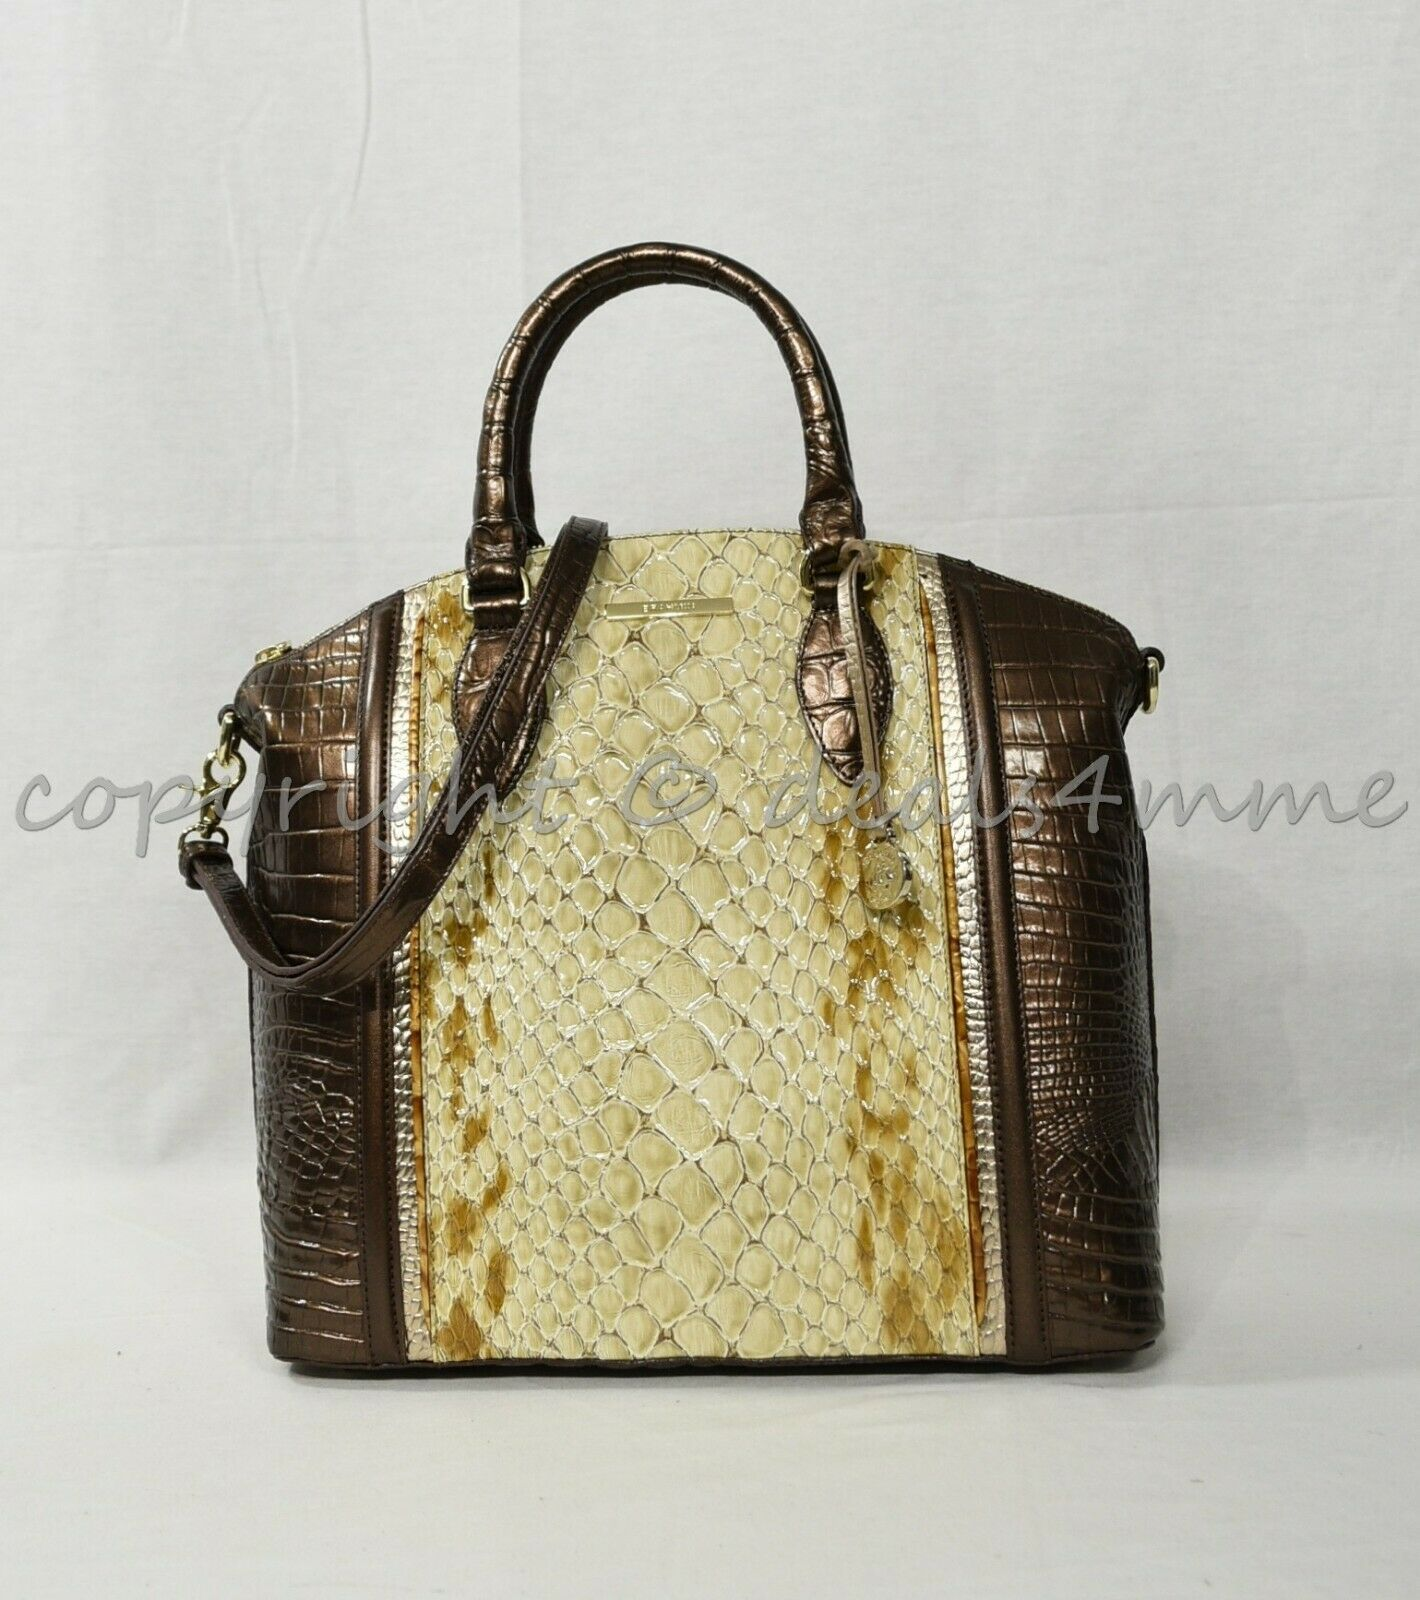 NWT Brahmin Large Duxbury Satchel/Shoulder Bag in Honey Carlisle